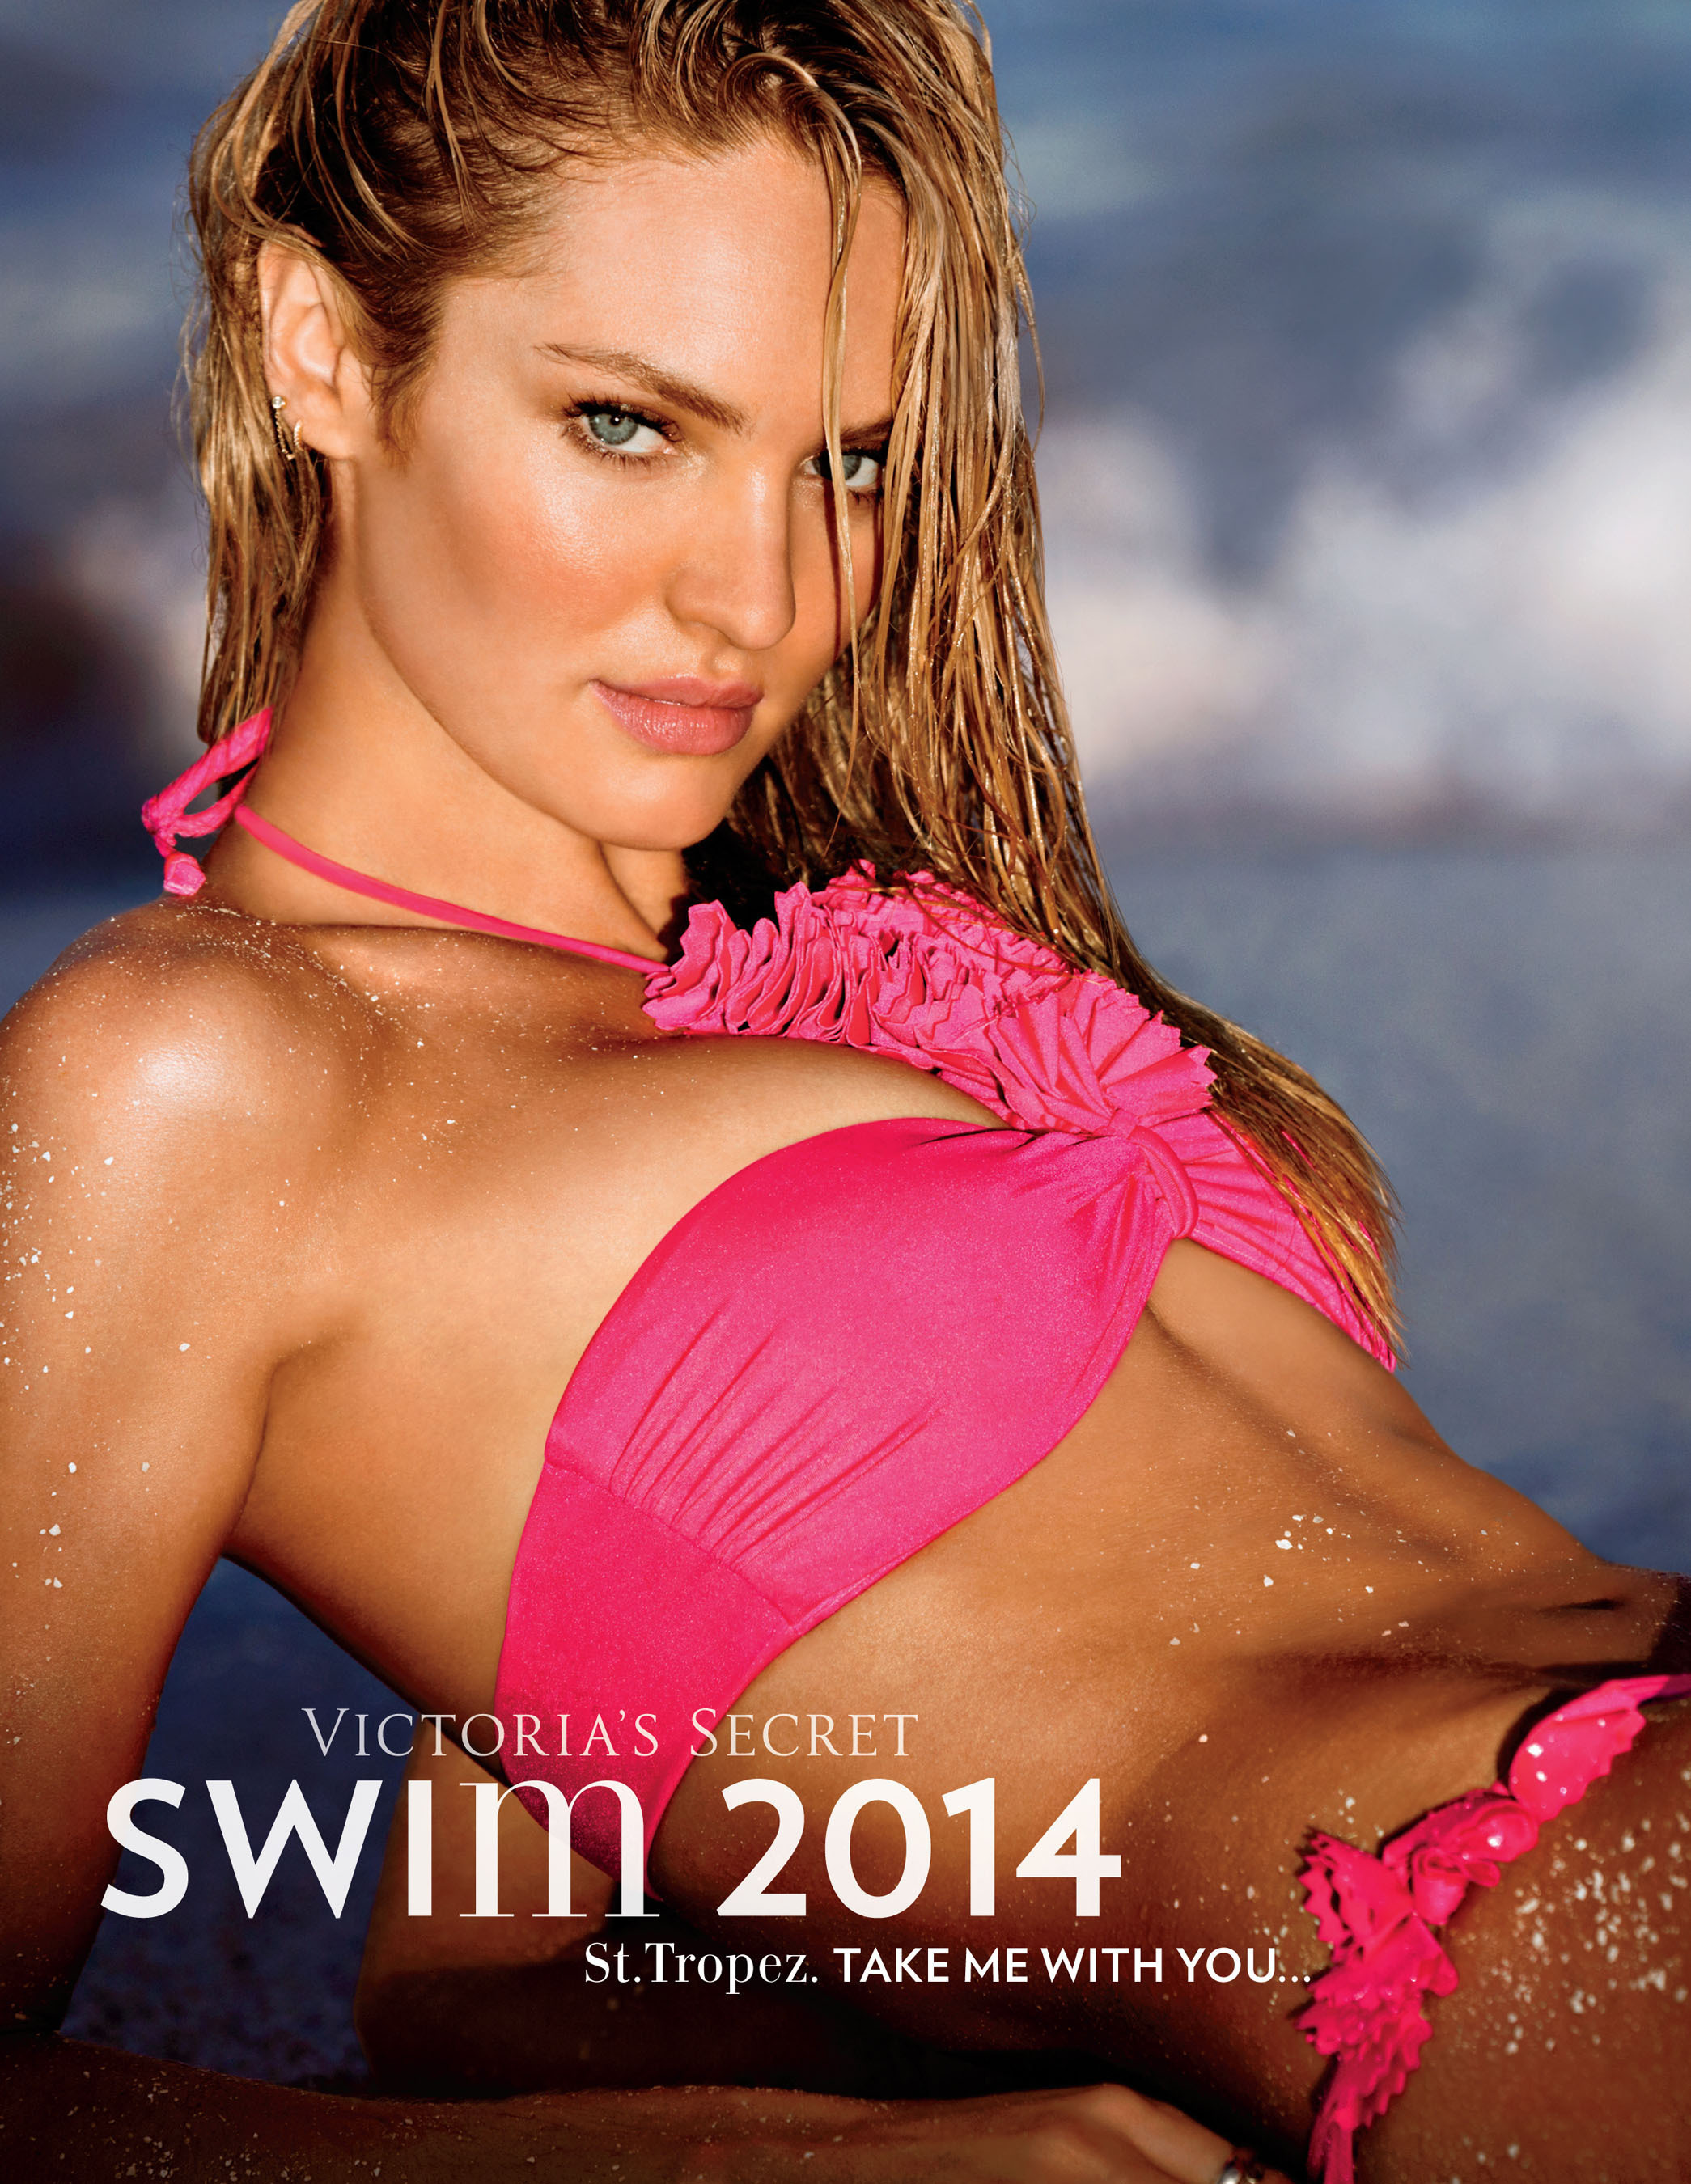 Candice Swanepoel is the Cover Angel for Victoria's Secret Swim 2014 Collection